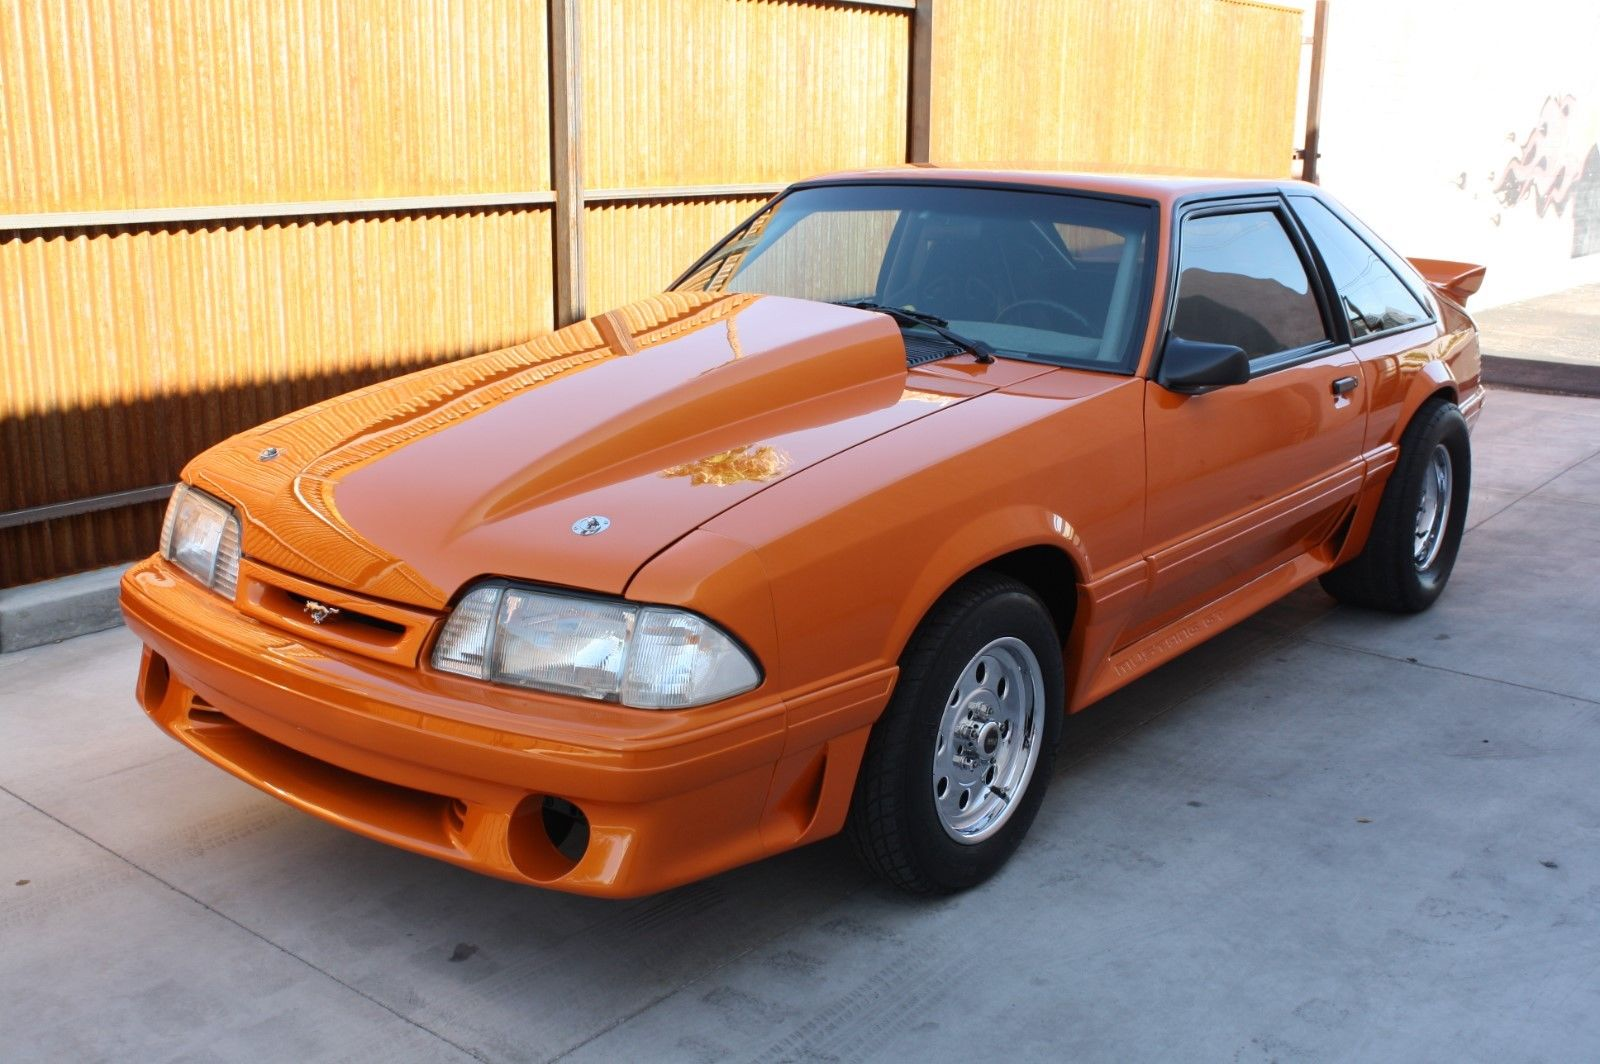 Amazing 1992 Ford Mustang Gt Fox Body Showcar 9 50 Quarter Mile Street Legal Pump Gas 2018 2019